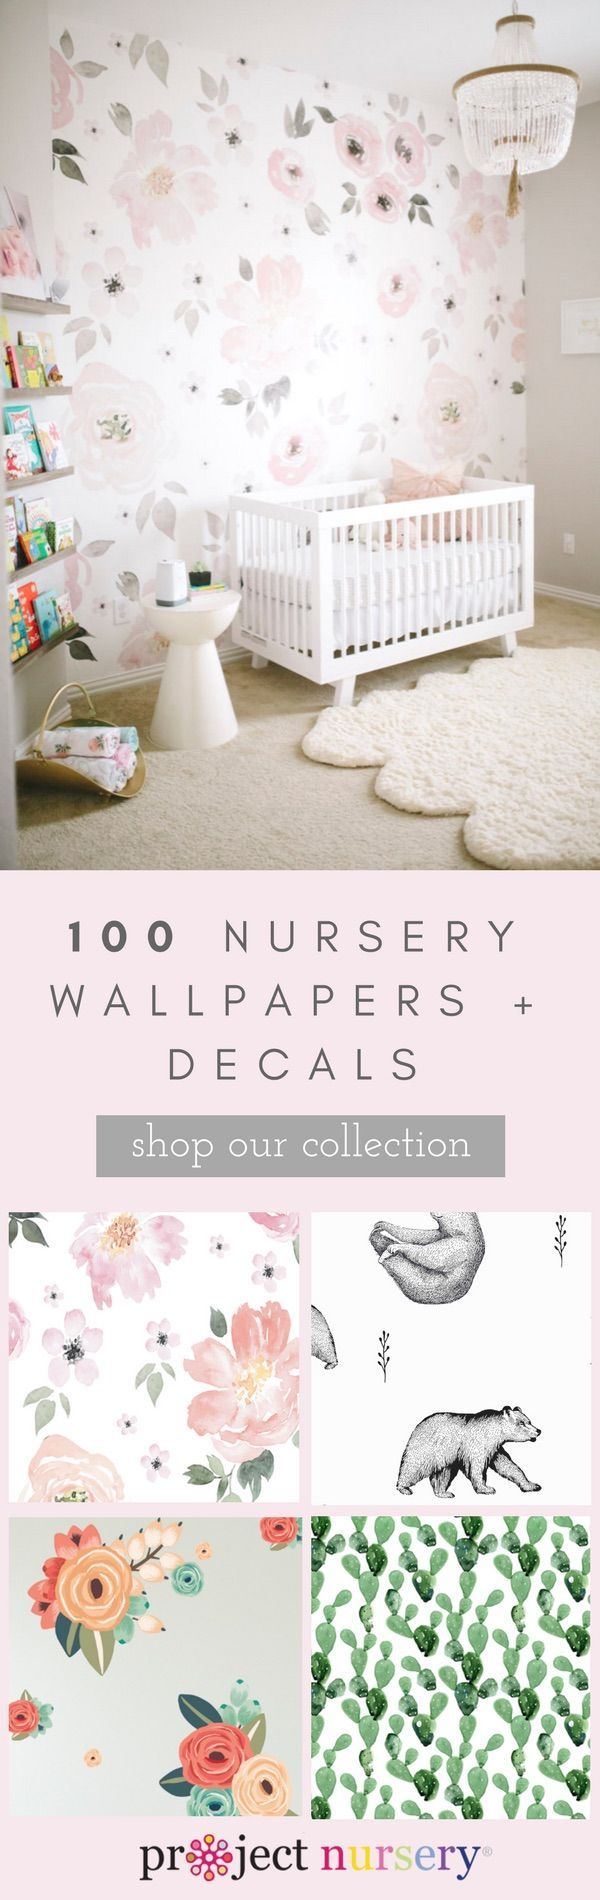 From feminine and floral to playful to boho chic and everything in between, shop... - http://centophobe.com/from-feminine-and-floral-to-playful-to-boho-chic-and-everything-in-between-shop/ -  - Looking for a change for your walls? http://centophobe.com/from-feminine-and-floral-to-playful-to-boho-chic-and-everything-in-between-shop/